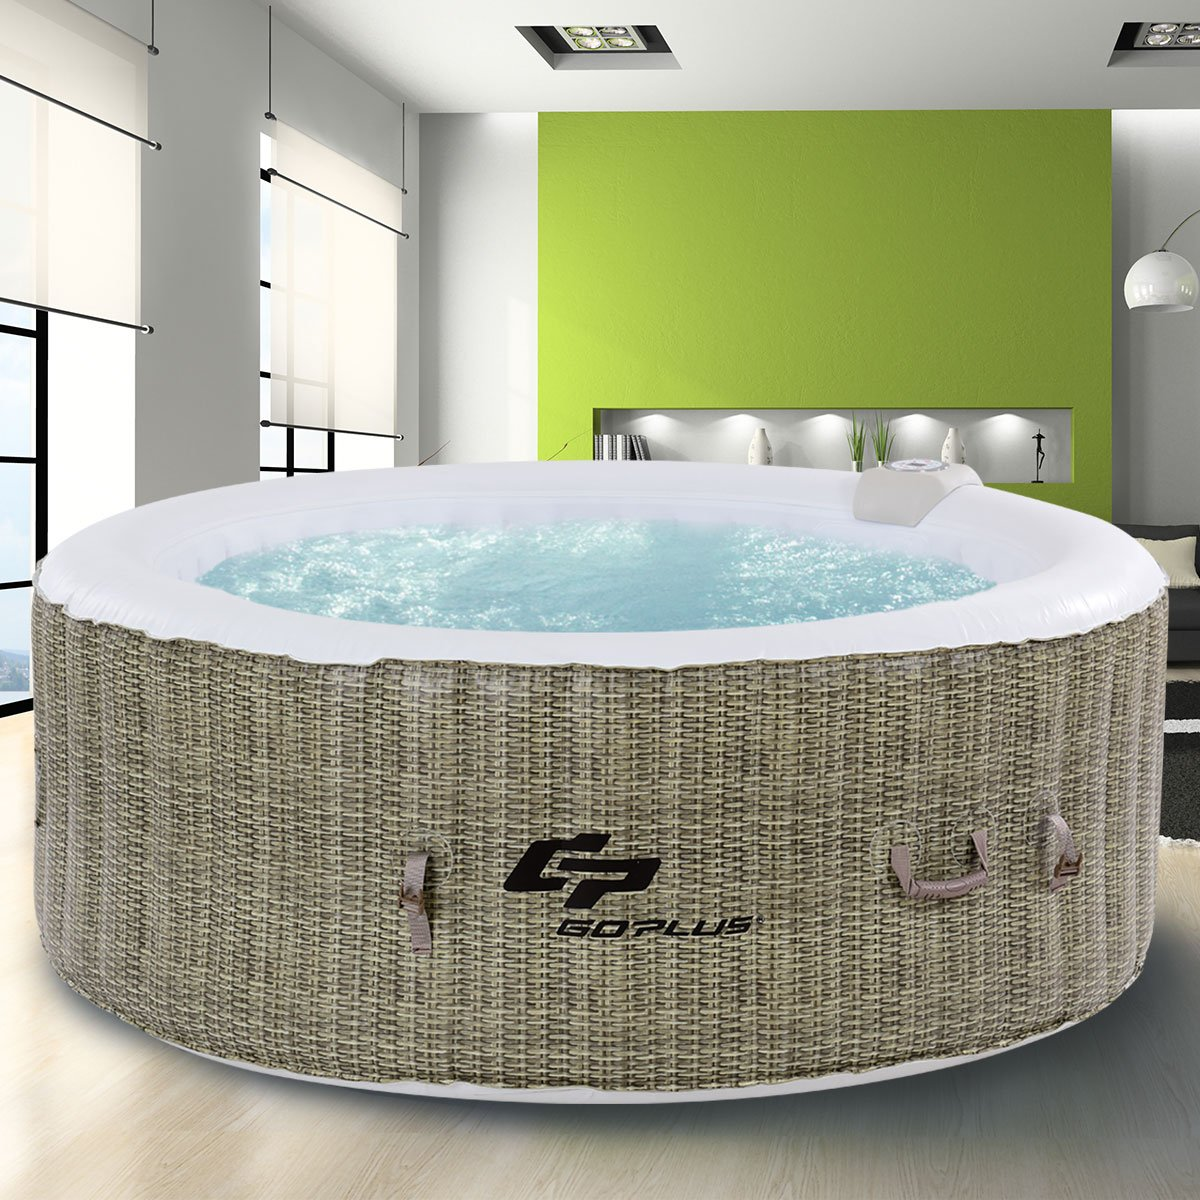 Goplus 6 Person Inflatable Hot Tub for Portable Outdoor Jets Bubble Massage Spa Relaxing w/Accessories (Coffee) by Goplus (Image #4)